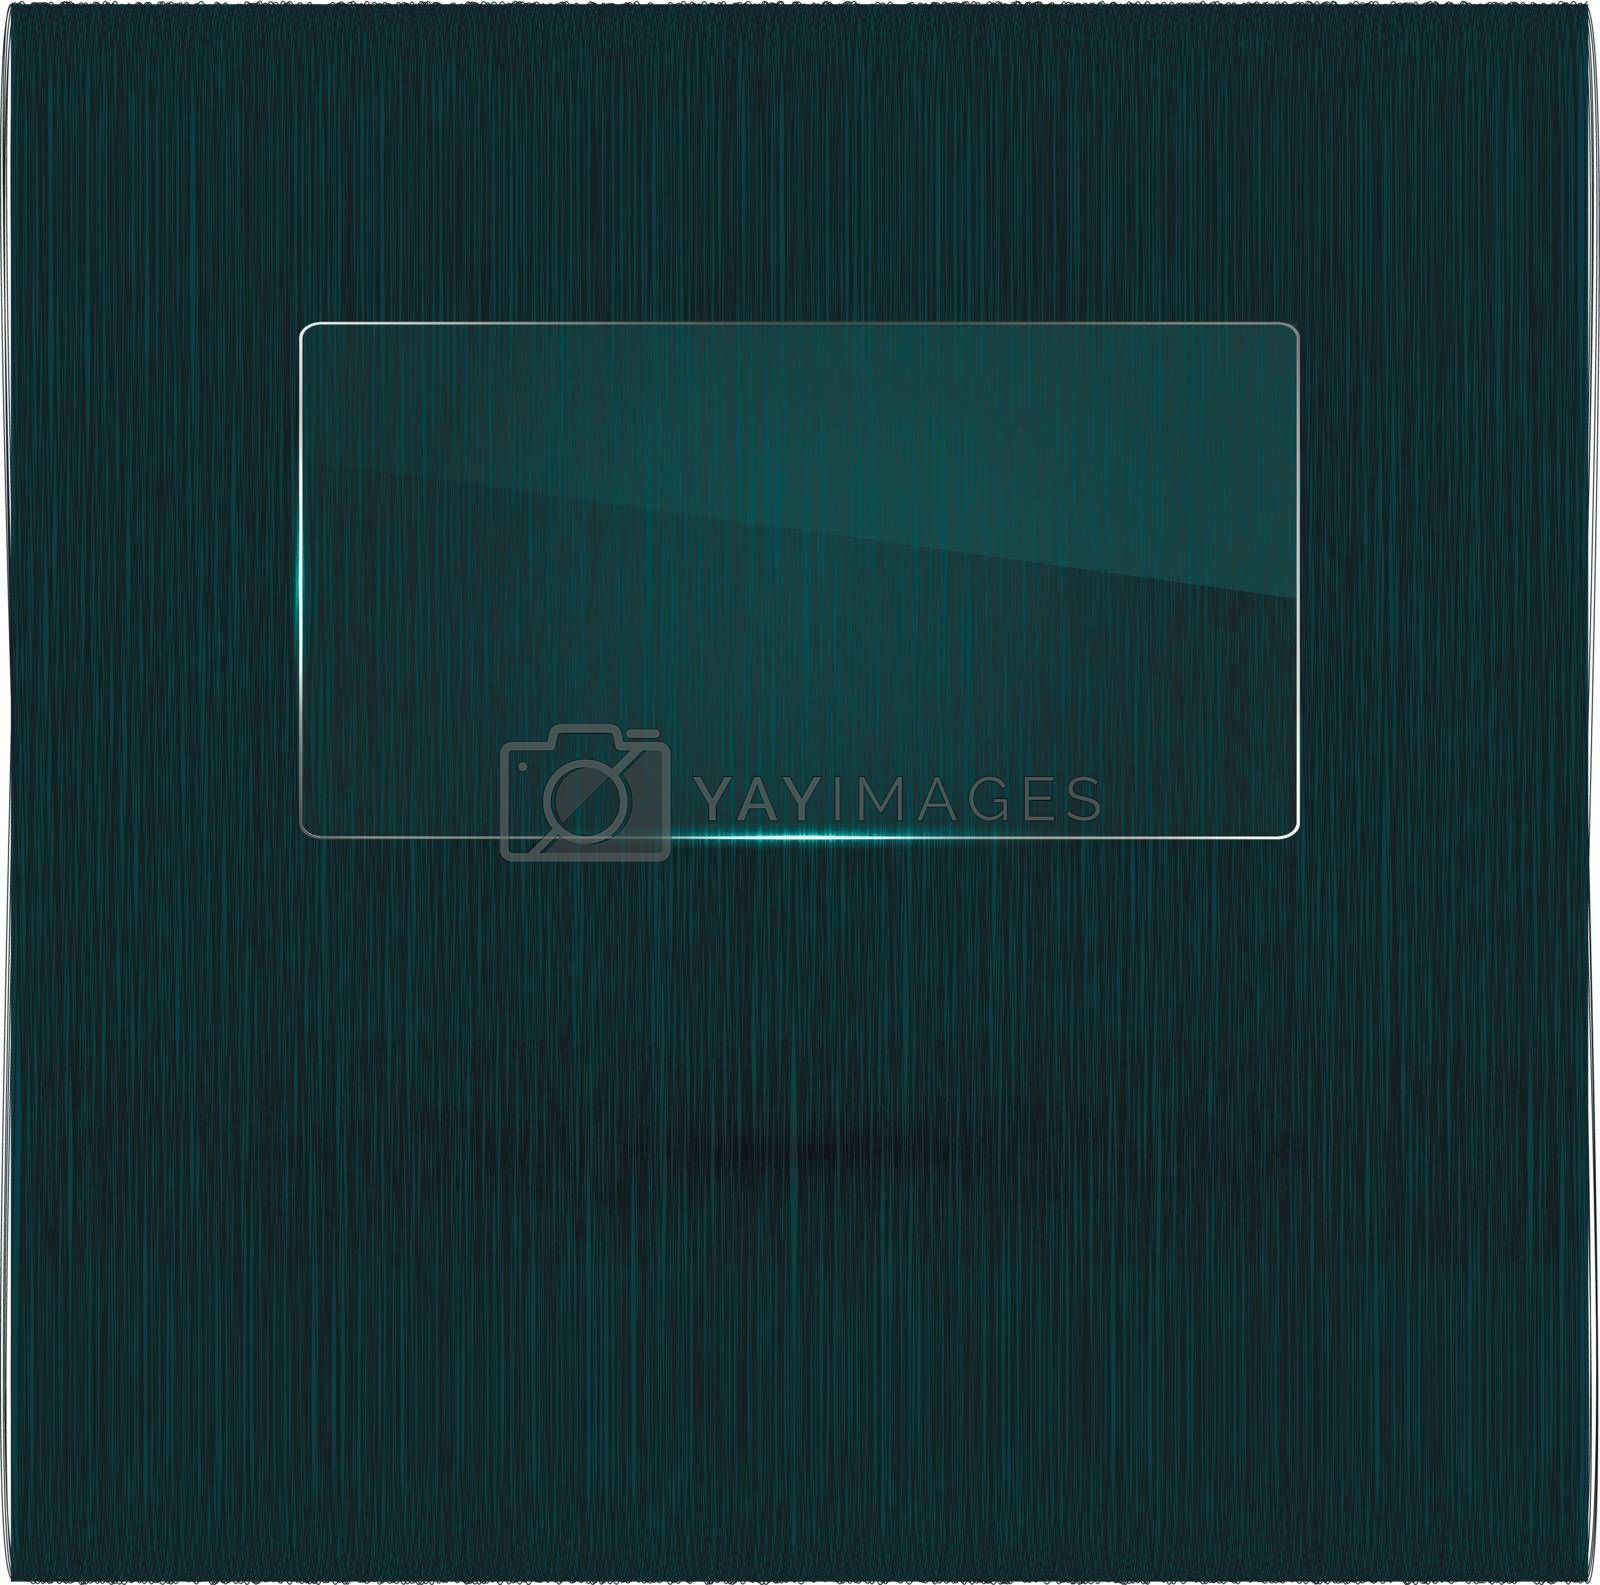 Vector illustration of a glass banner